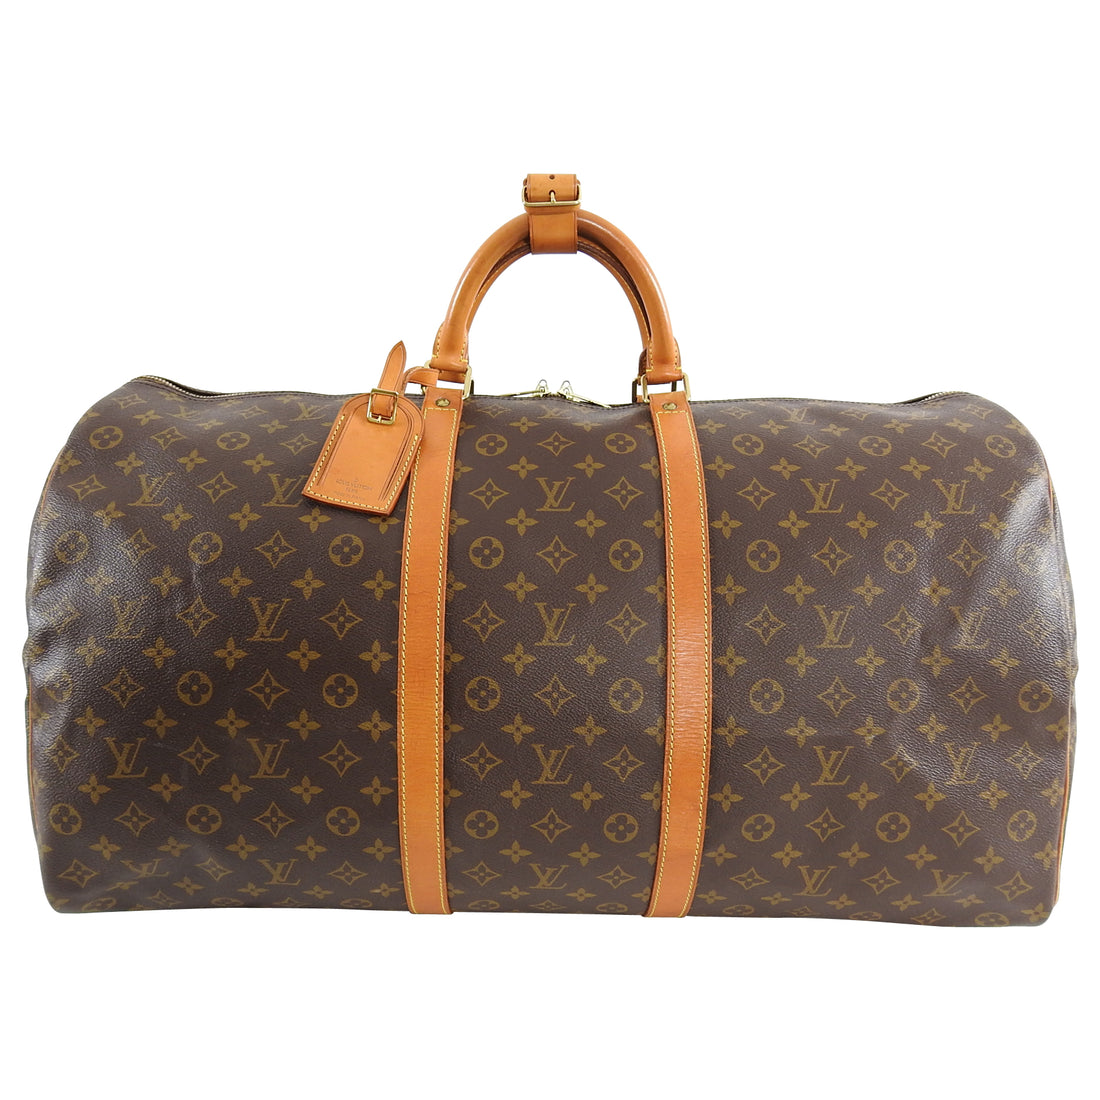 Louis Vuitton Vintage 1995 Monogram Keepall 60 Travel Duffle Bag